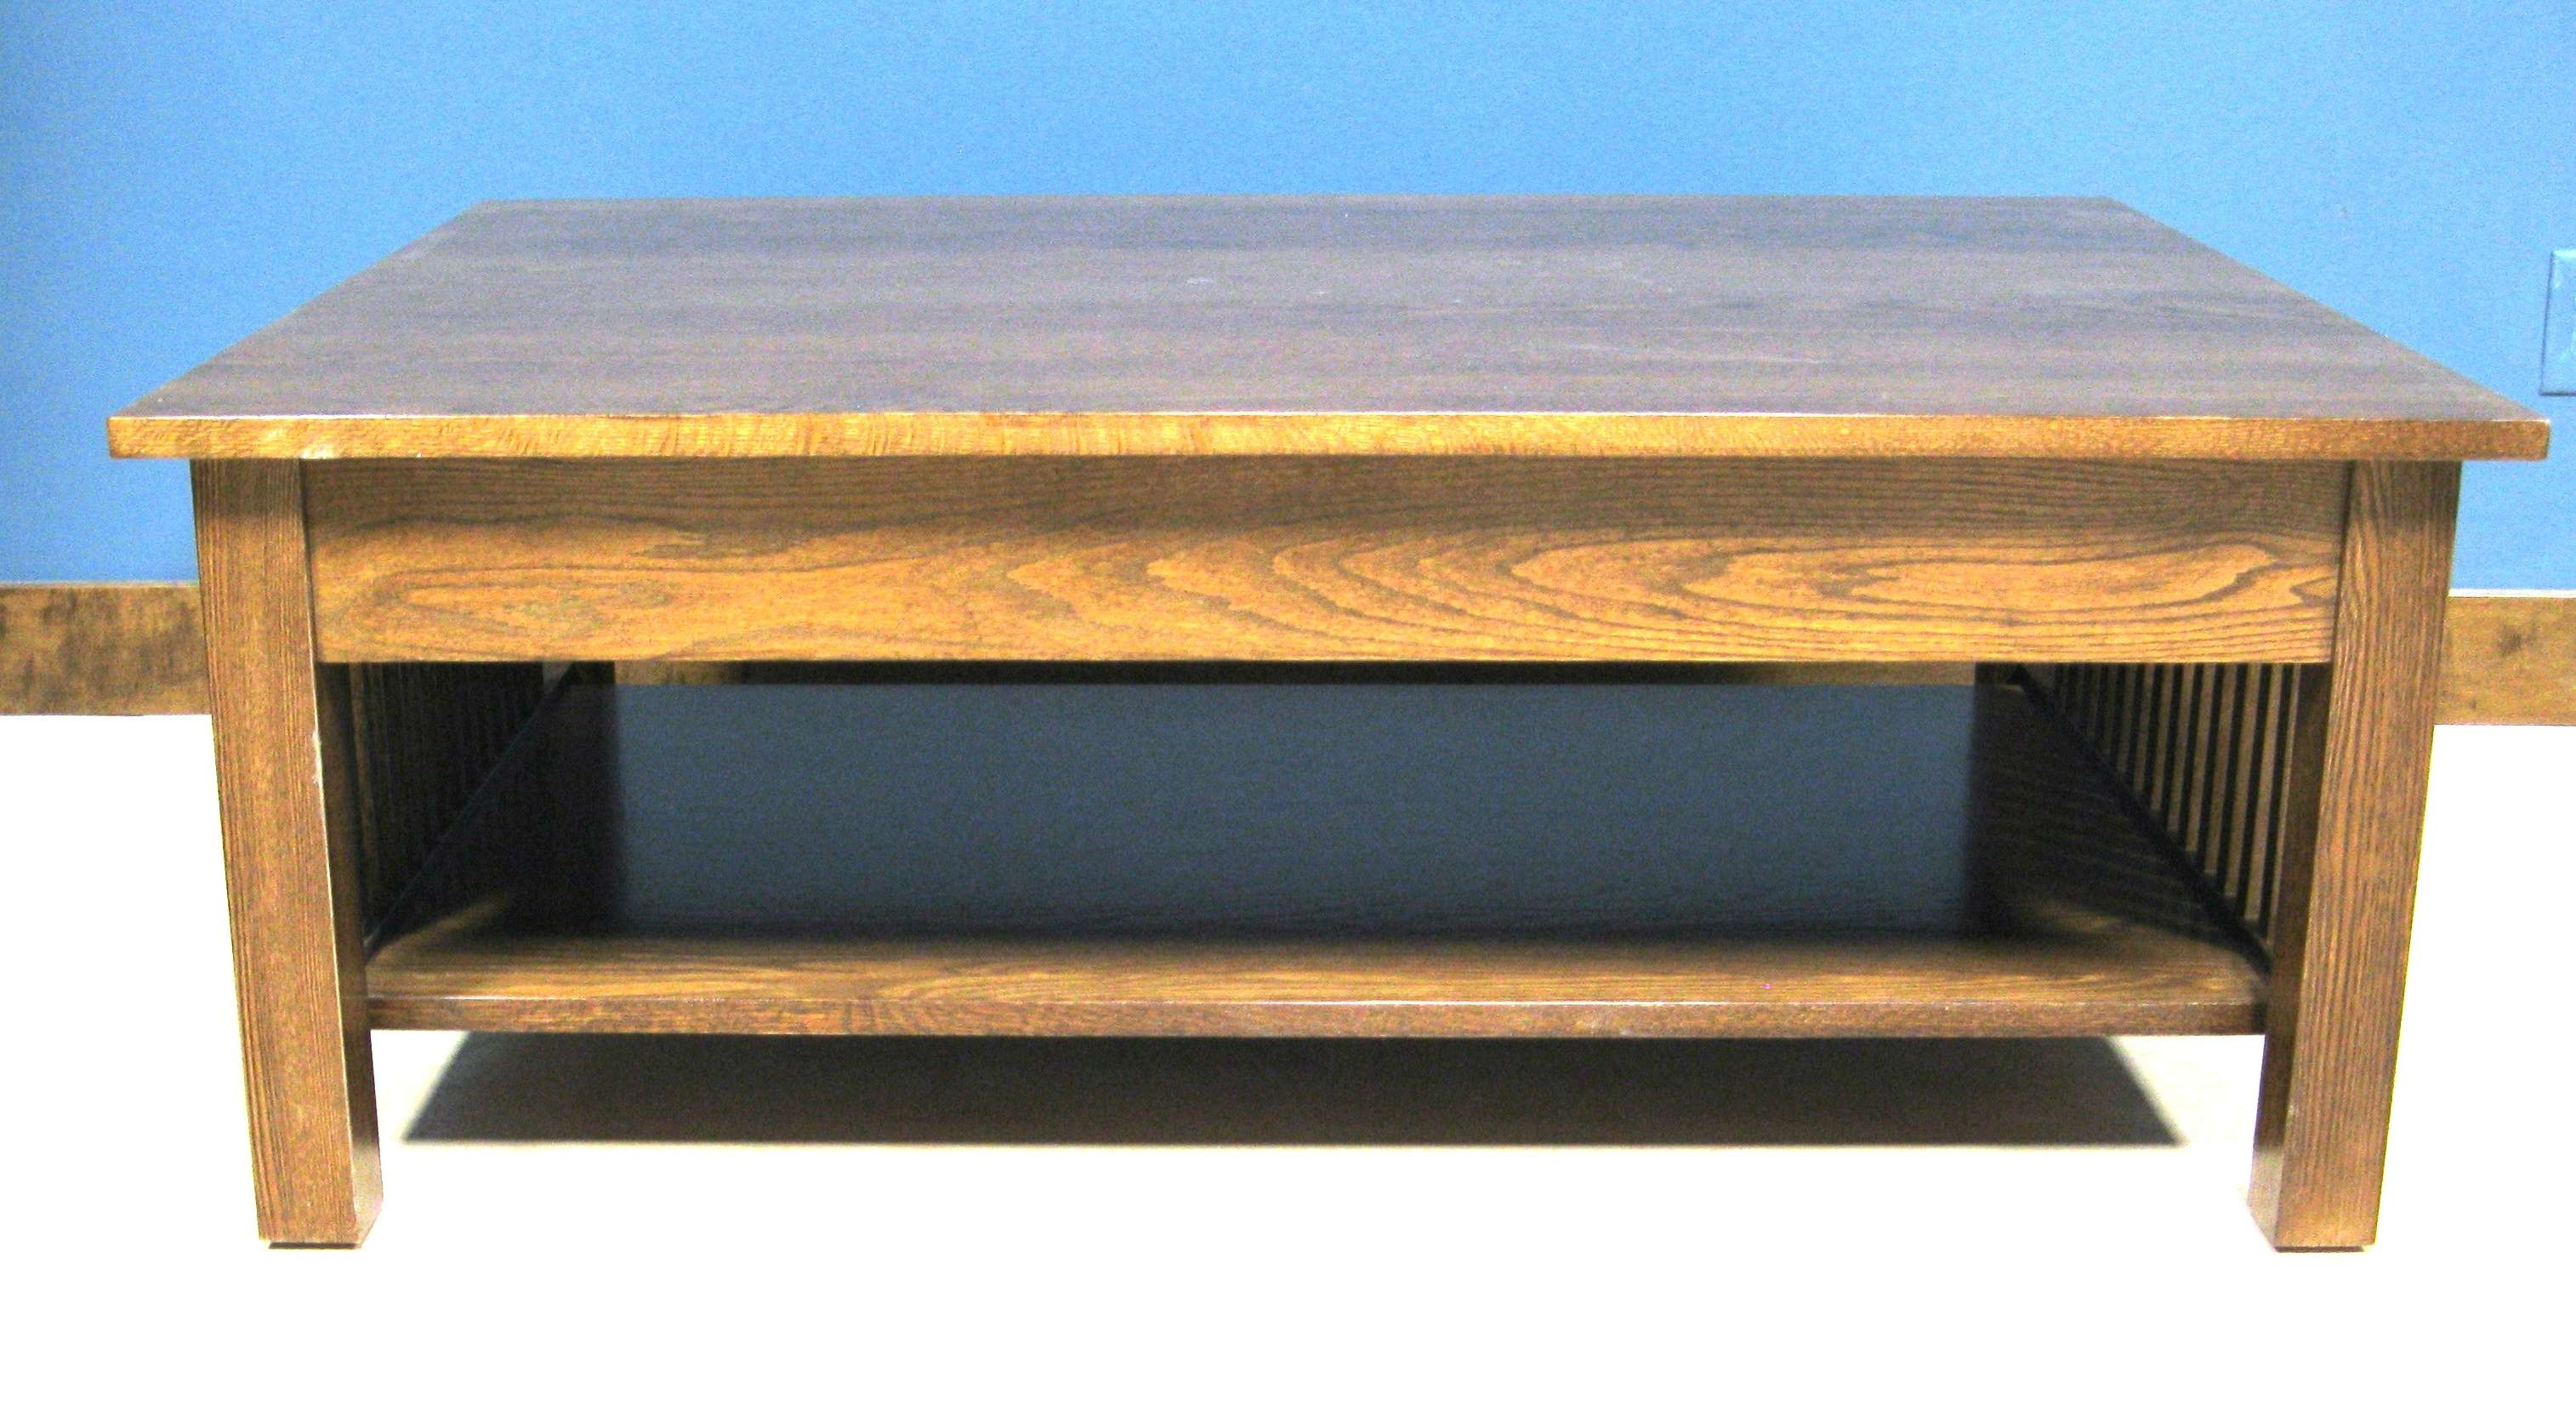 Newest Square Oak Coffee Tables Inside Square Coffee Table W/ Drawer (View 18 of 20)